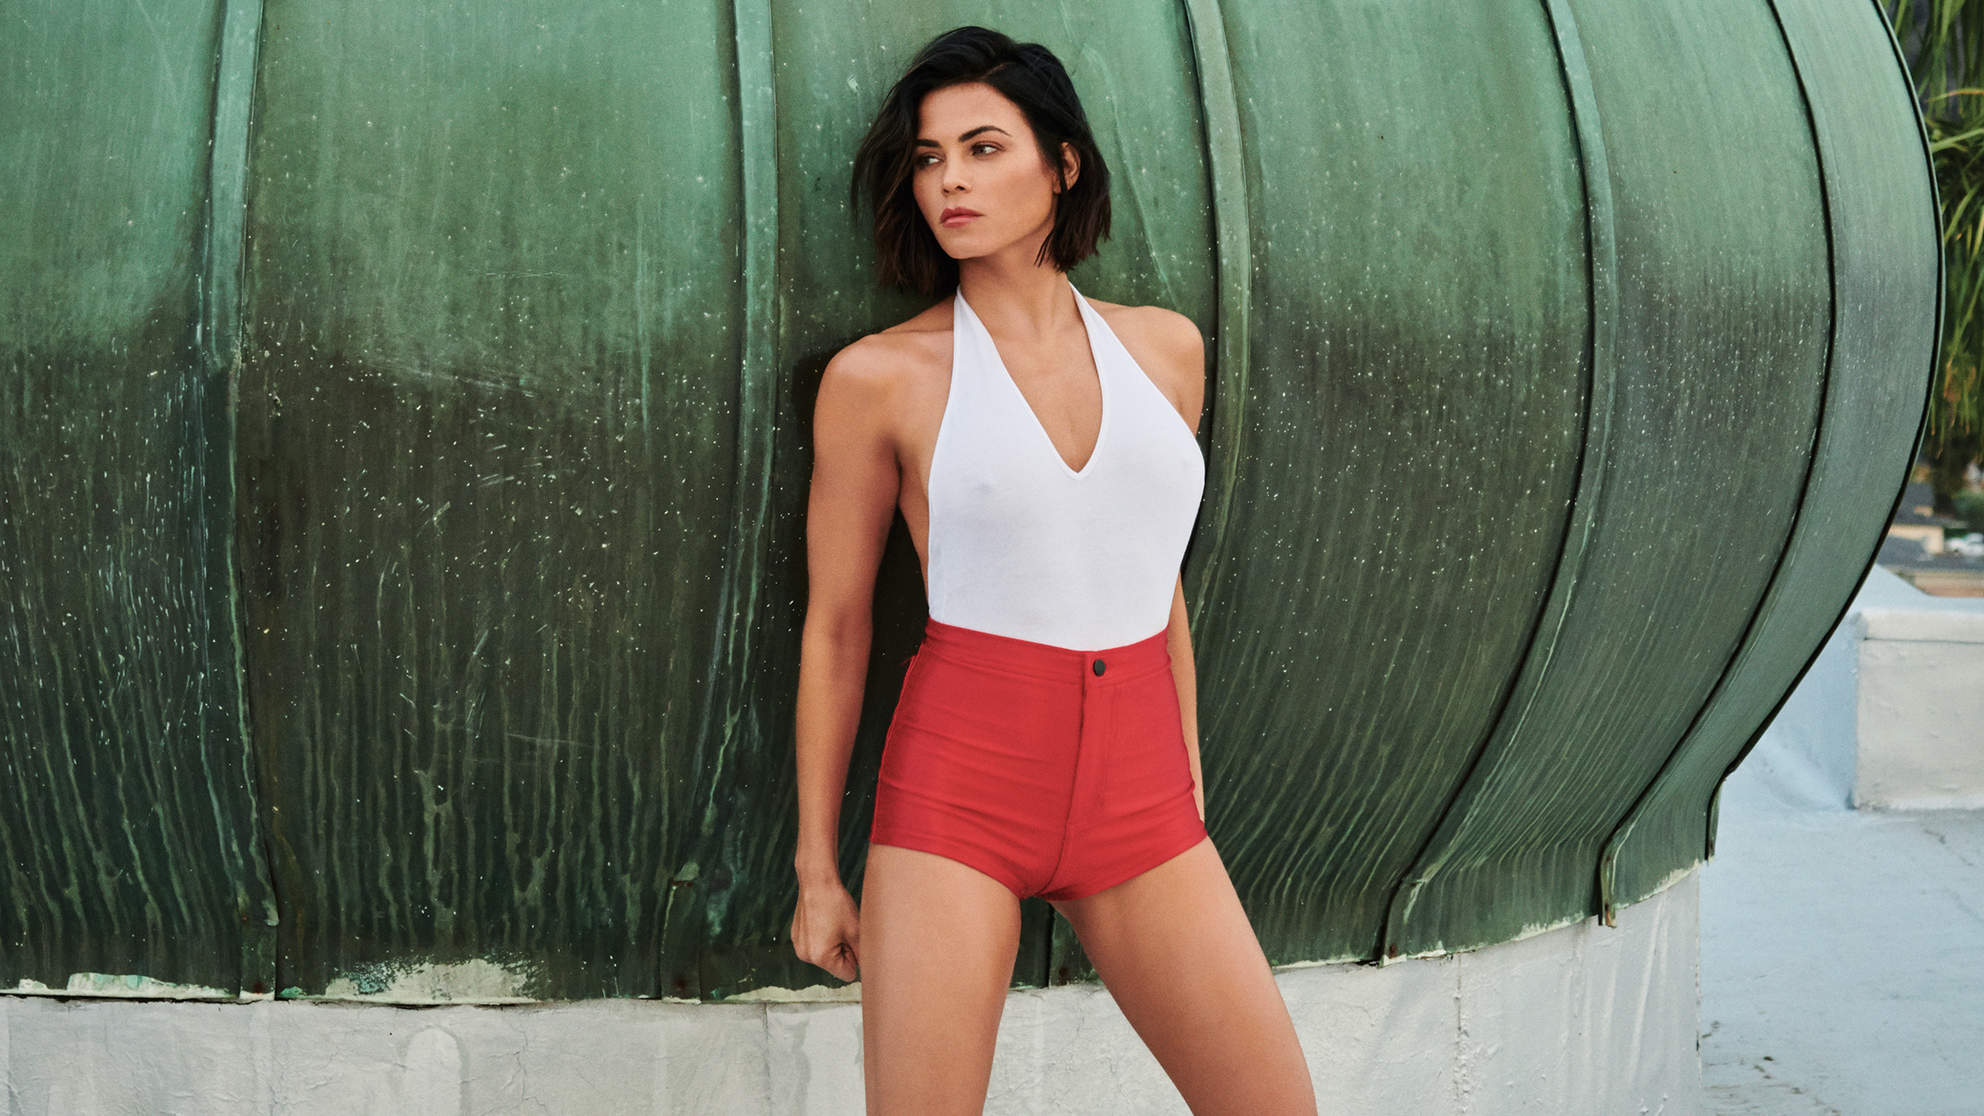 jenna dewan beach awesome picture